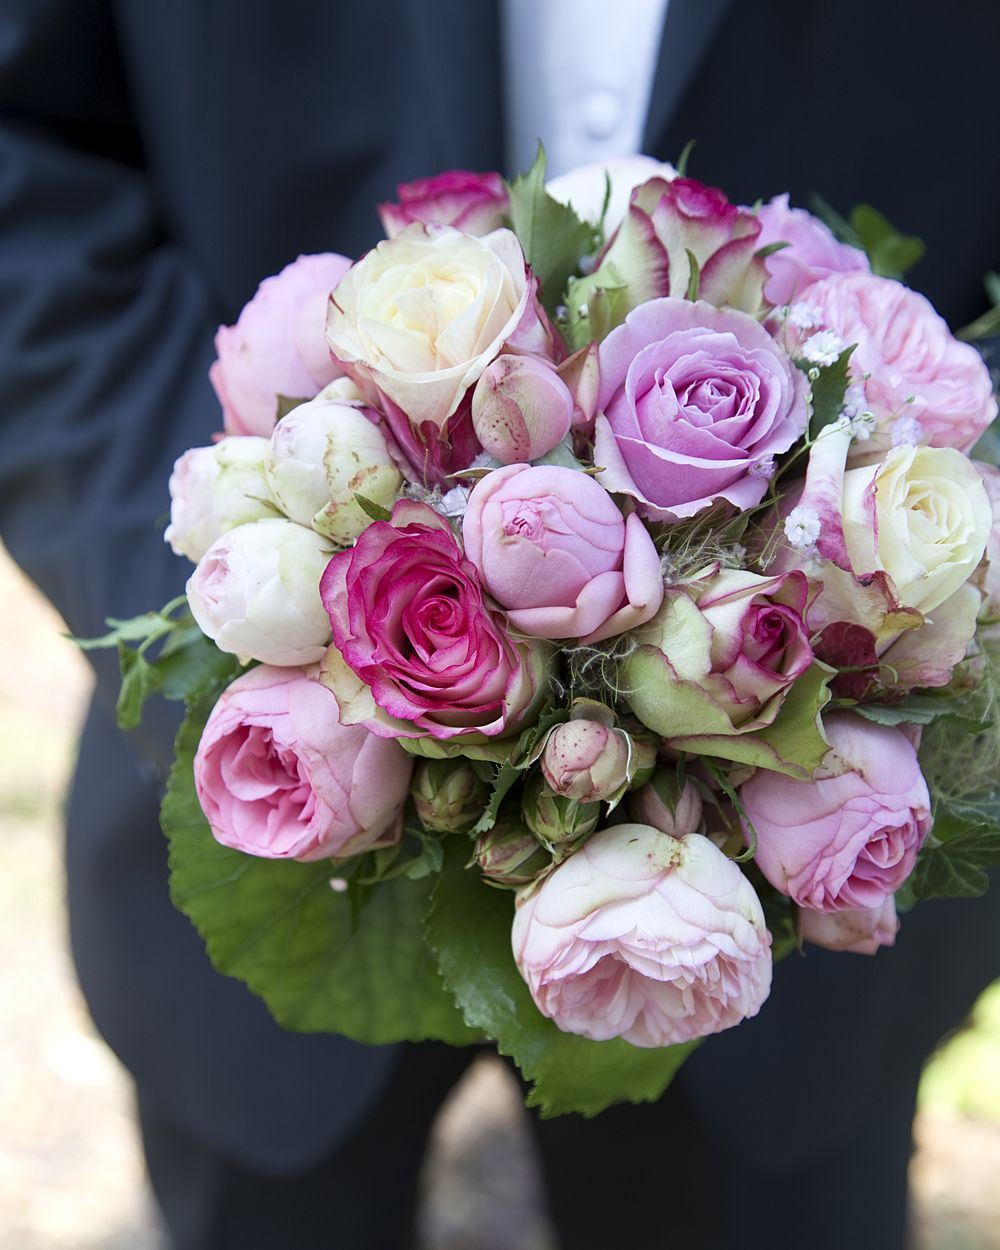 Blumen Flower Flowers Wedding Weddingflowers Weddingphotography